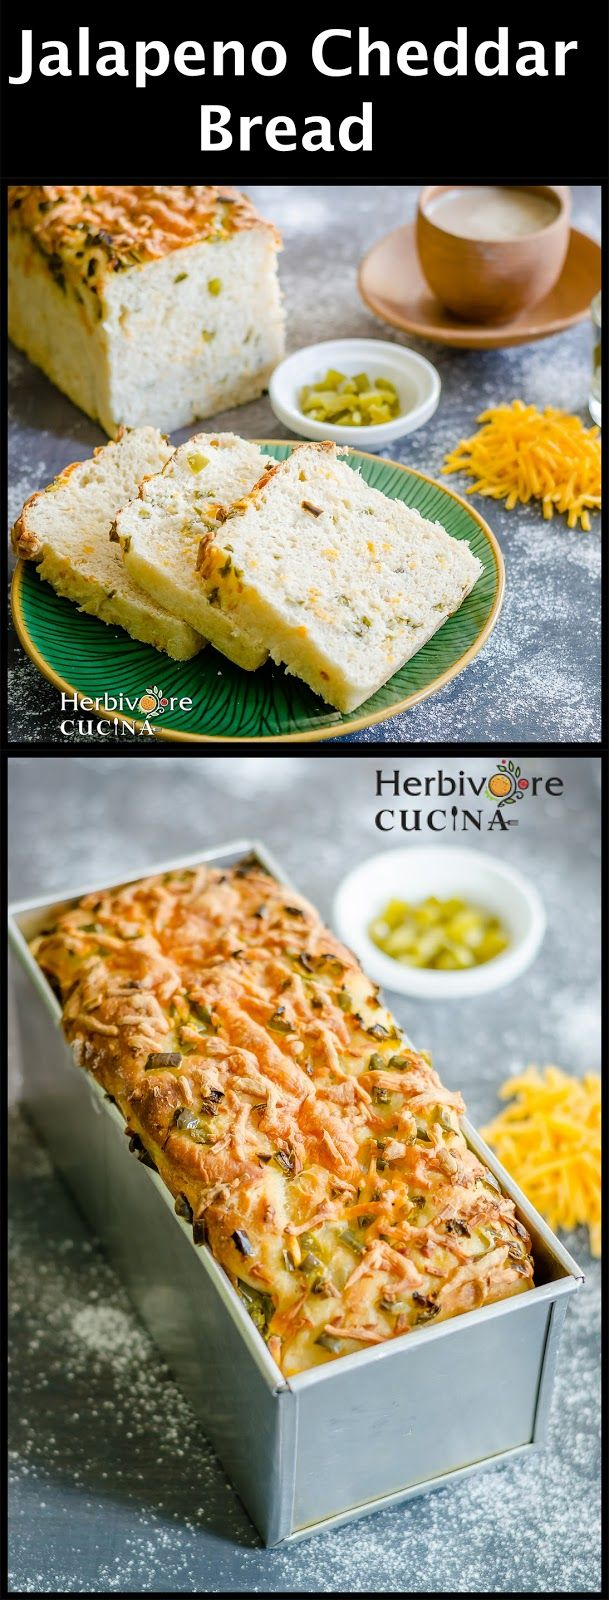 Herbivore Cucina: Jalapeño and Cheddar Bread...A spicy and cheesy bread made from scratch. Few things can beat this Jalapeño and Cheddar Bread when it comes to flavor and ease of making! #VivaLaMorena #CollectiveBias #Ad #JalapeñoCheddarBread #EgglessBaking #BreadsAndCakes #PepperBread #CheeseBread #CheddarCheeseRecipes #JalapenoCheesePoppers #WhiteBread #Sandwich #JalapenoRecipes